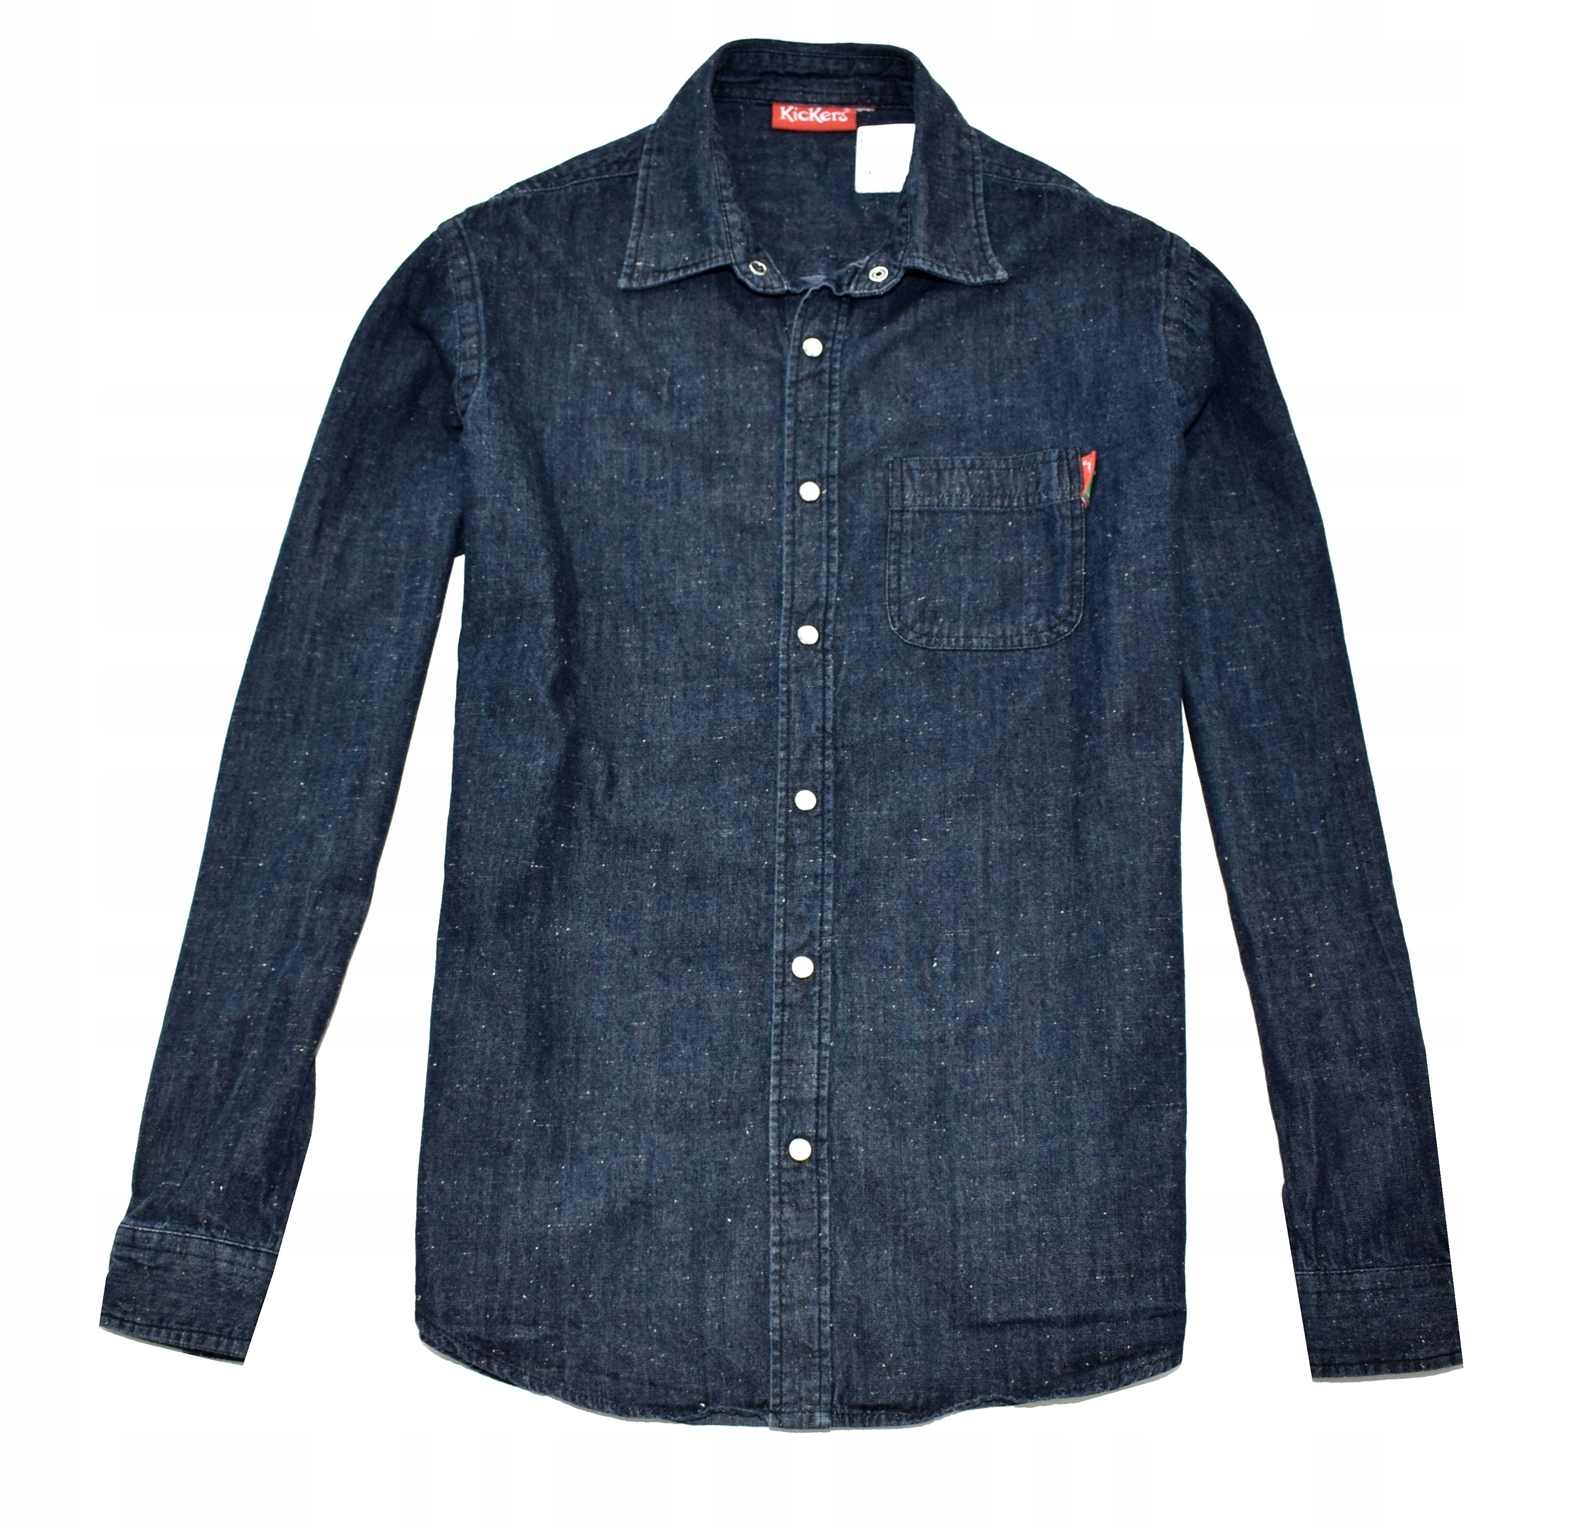 MM 318 KICKERS_ORYGINAL STRONG JEANS SHIRT_M